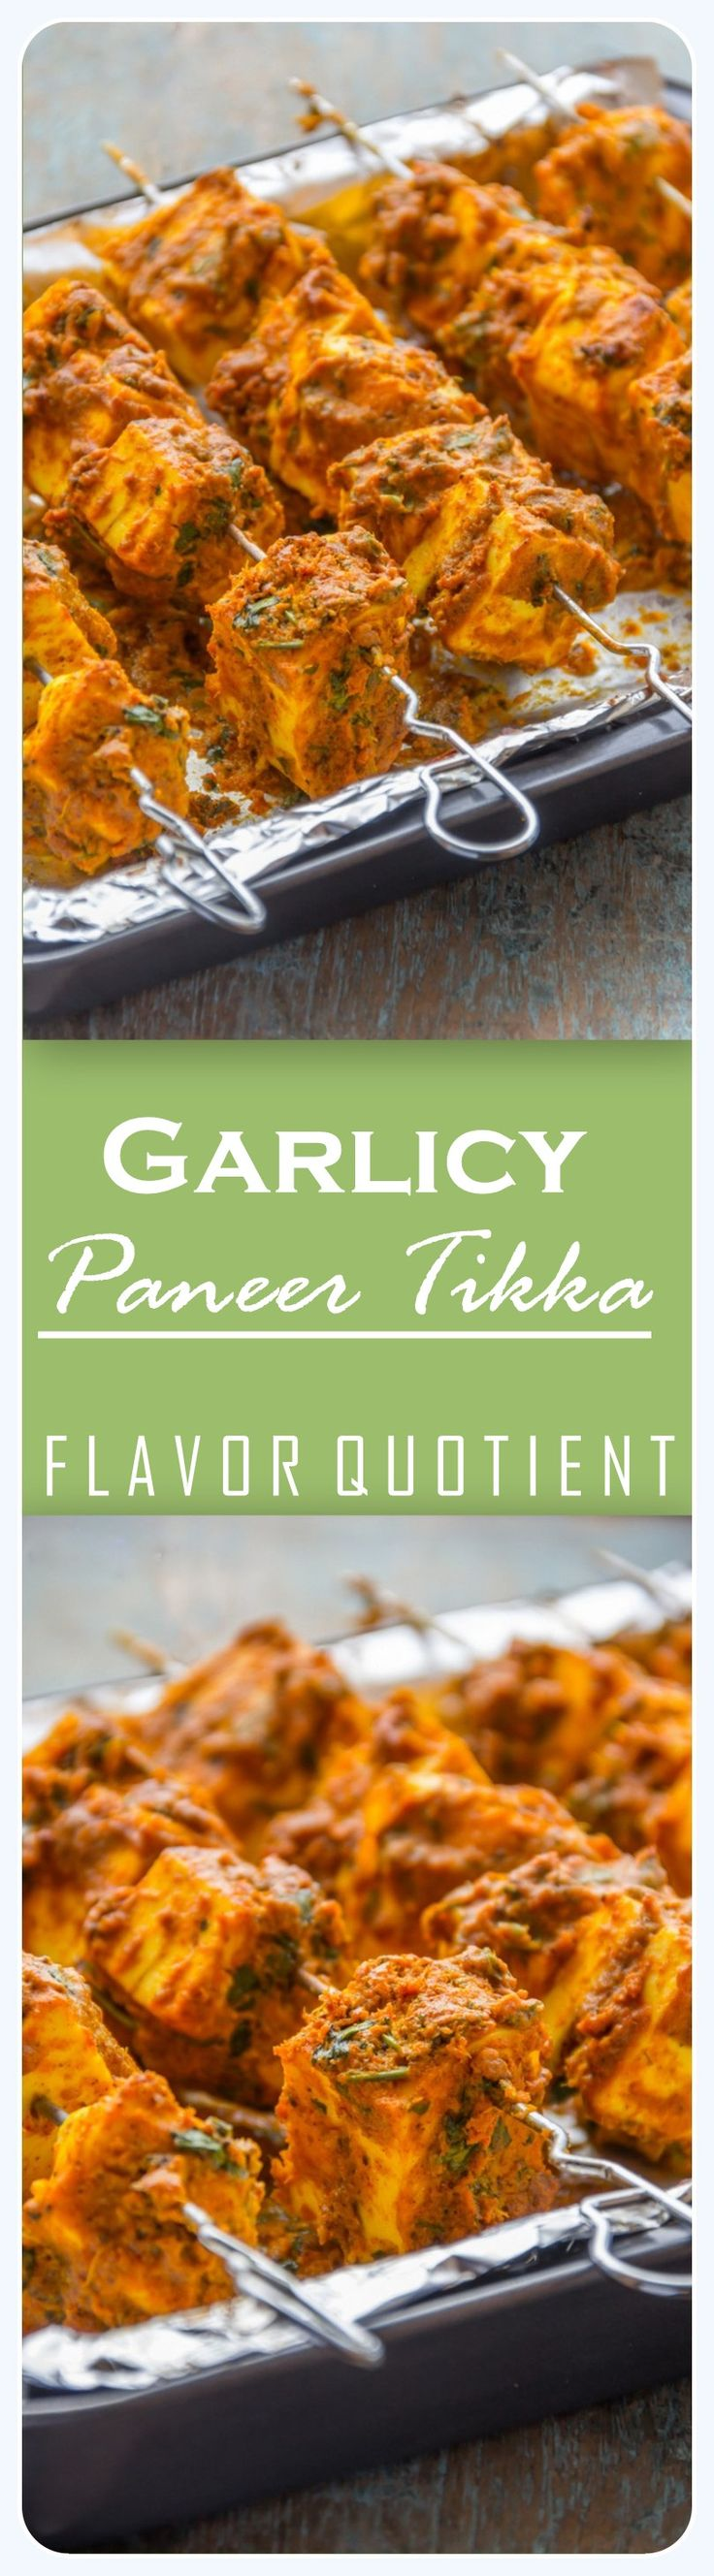 These scrumptious garlicy paneer tikka takes in lot of ingredients but marry the aromas so well that you will sense the burst of flavors instantly at the very first bite! #PaneerTikka #LasooniPaneerTikka #PaneerRecipes #Appetizer #FlavorQuotient